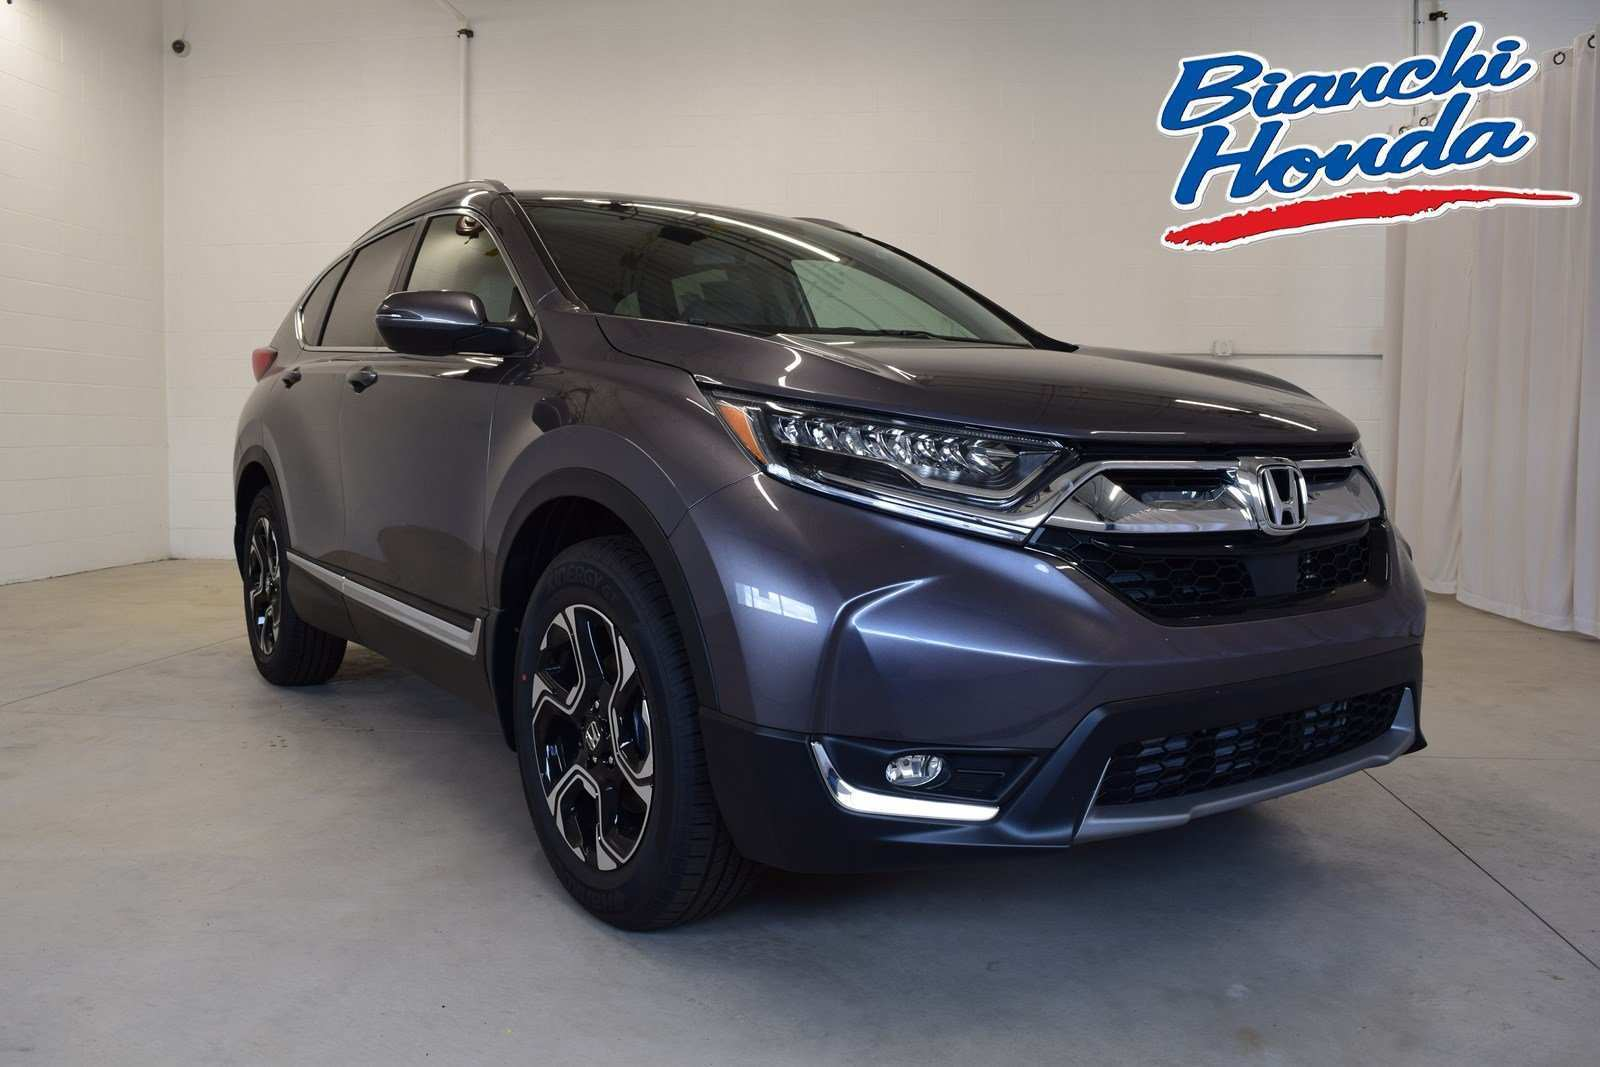 67 Gallery of 2019 Honda Touring Crv Research New with 2019 Honda Touring Crv